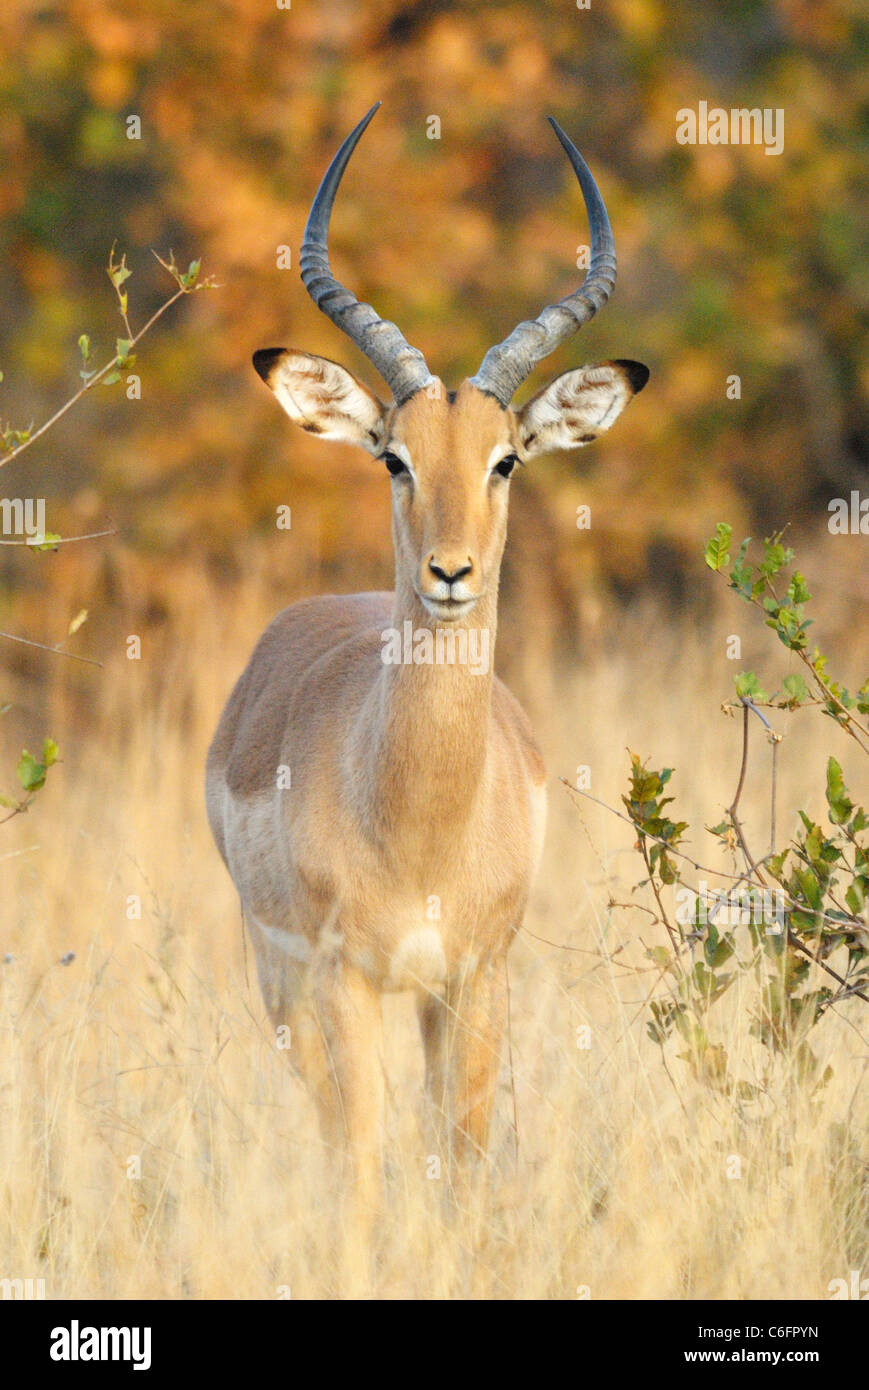 Male Impala in Kruger National Park, South Africa - Stock Image